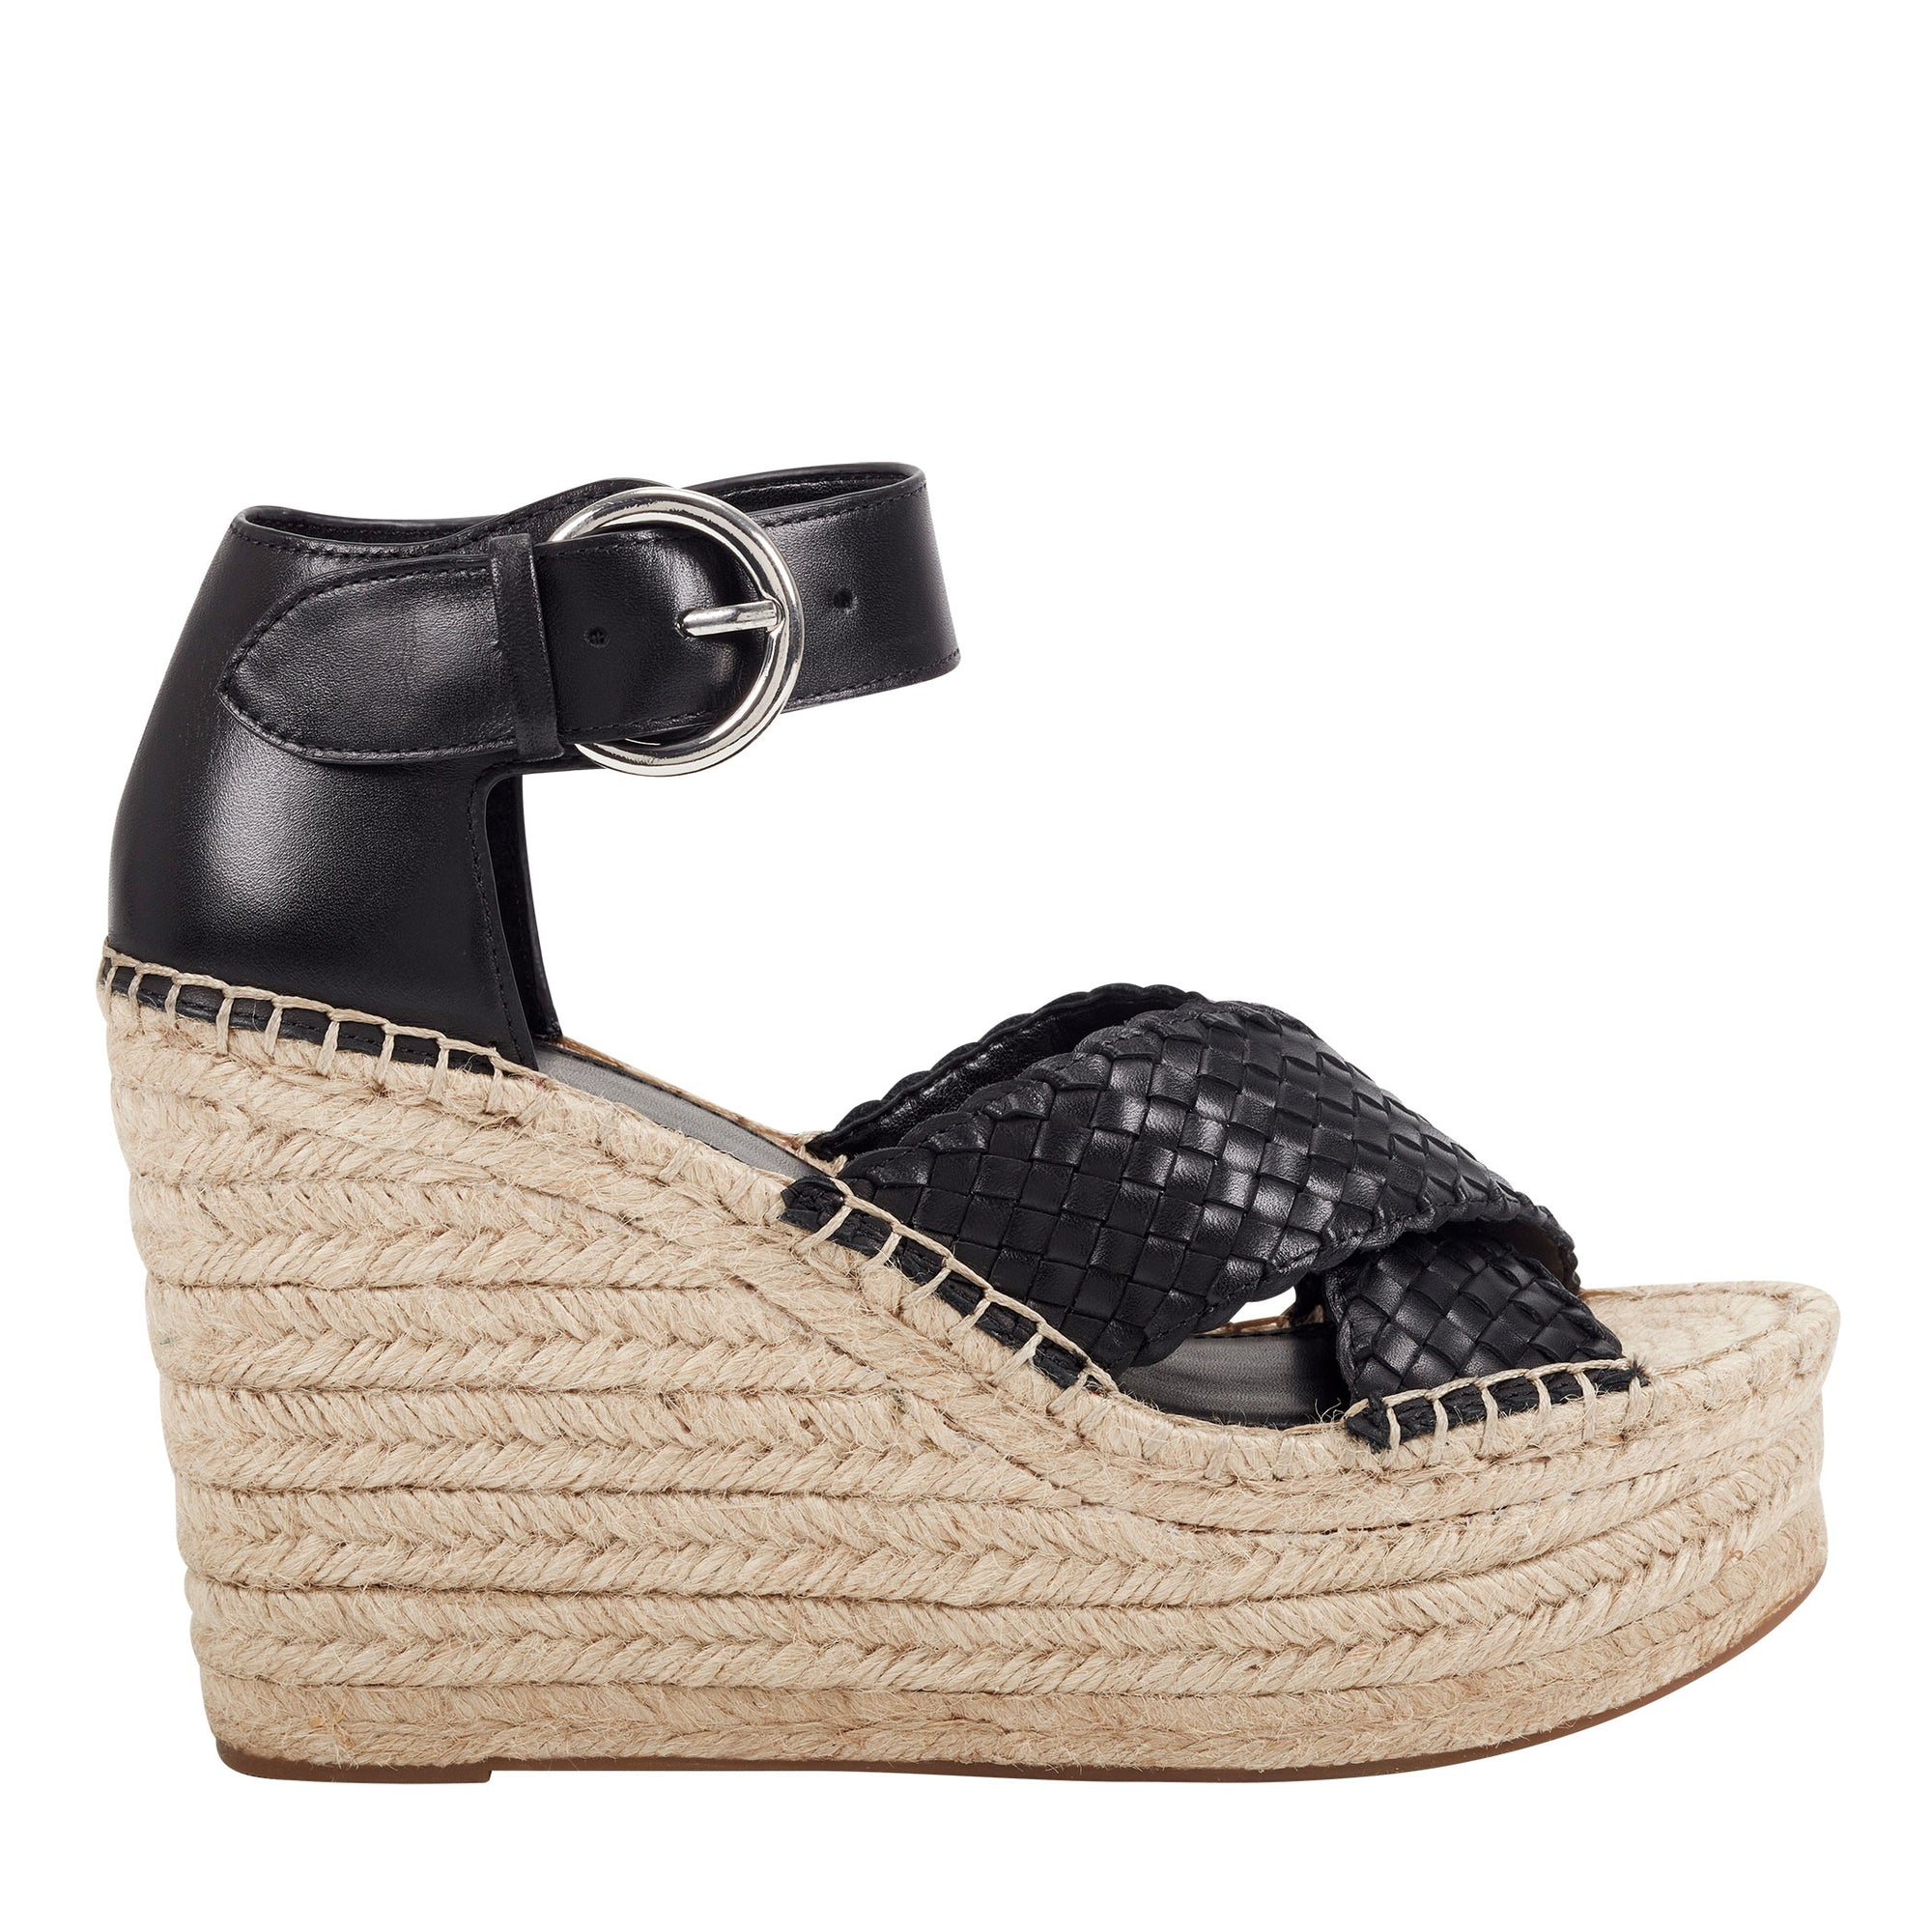 aylon-espadrille-wedge-sandal-in-black-leather